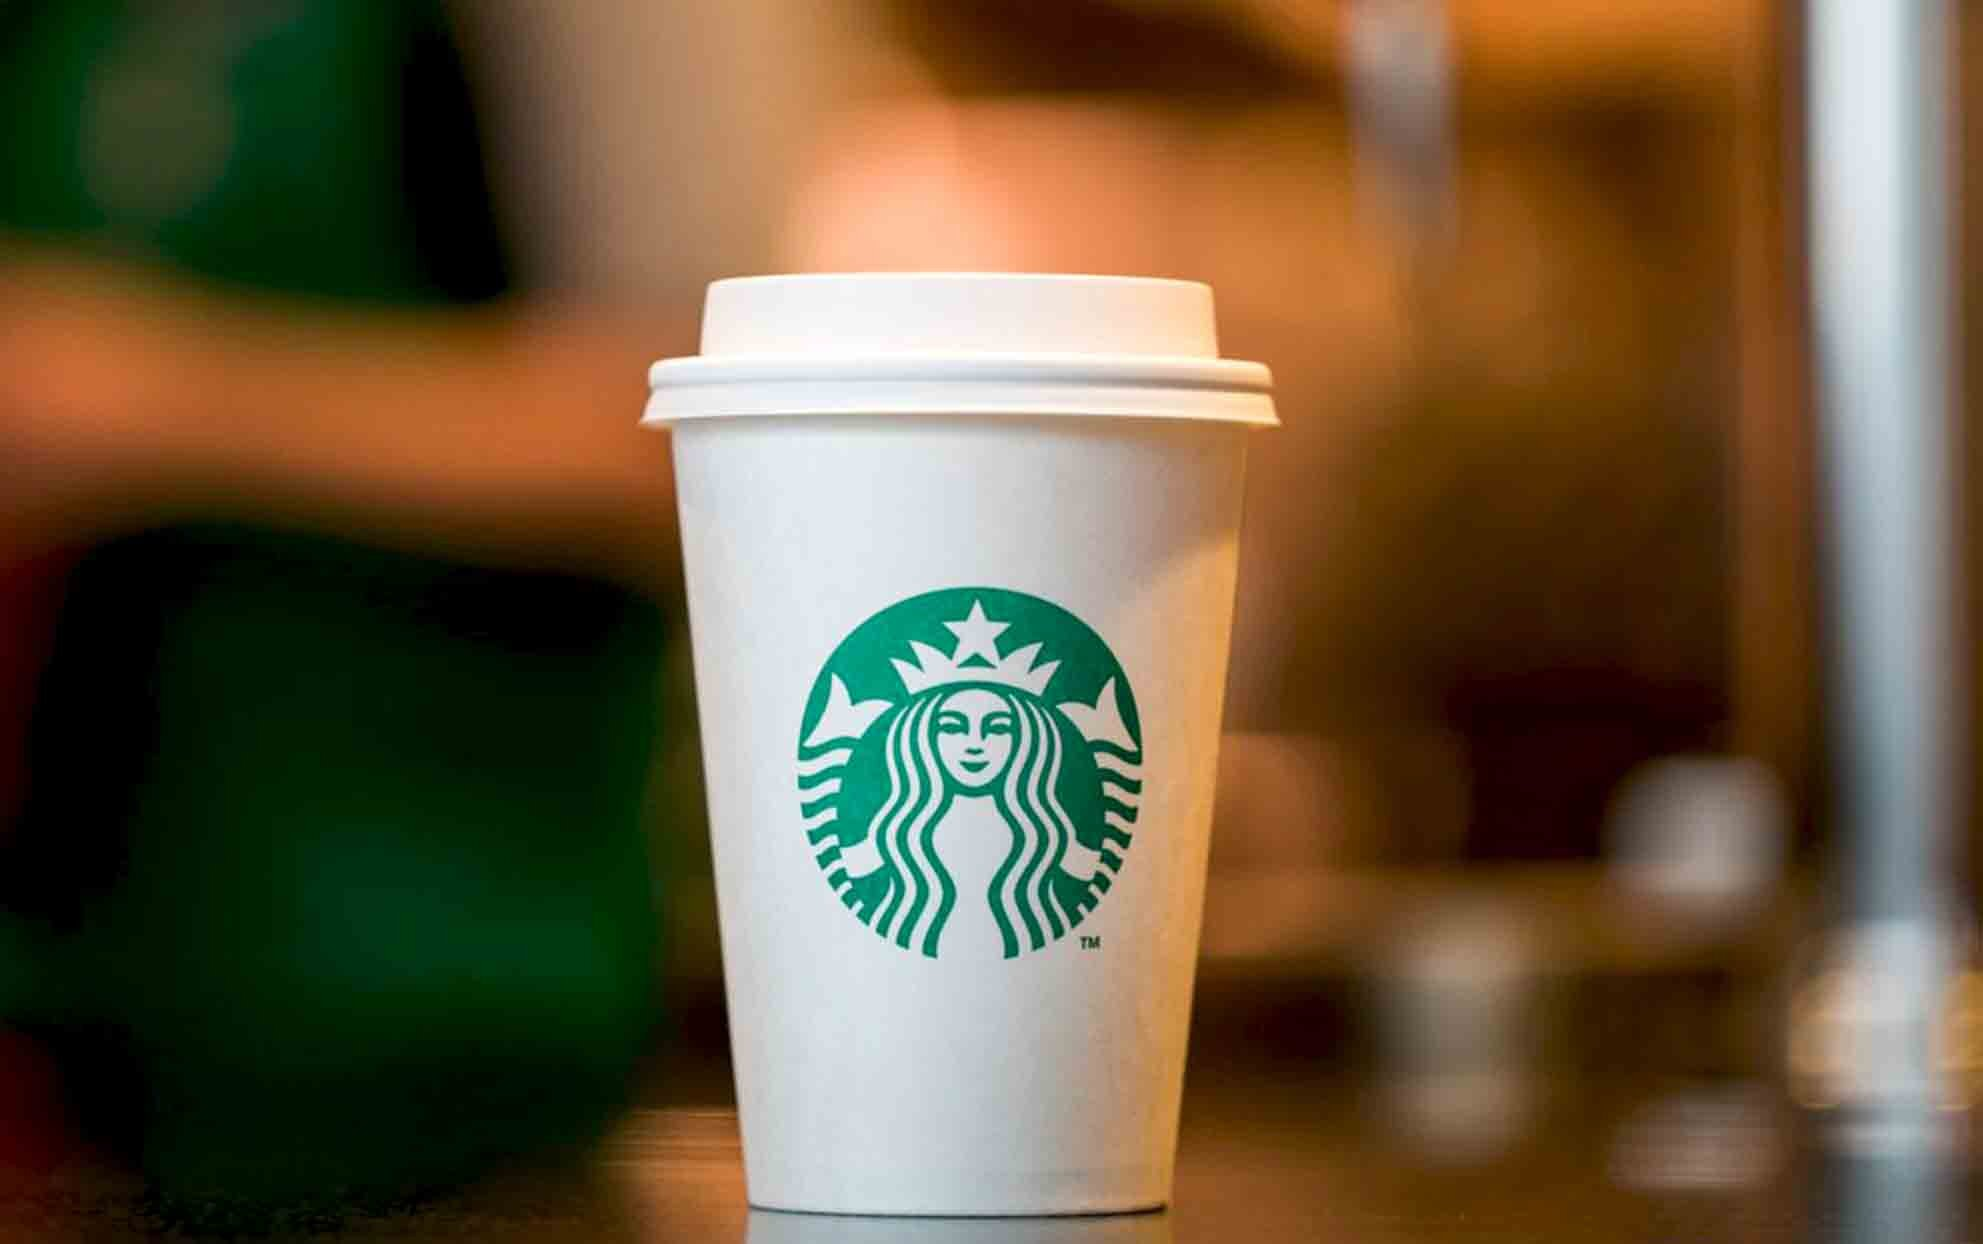 Starbucks white to go cup in a Starbucks store